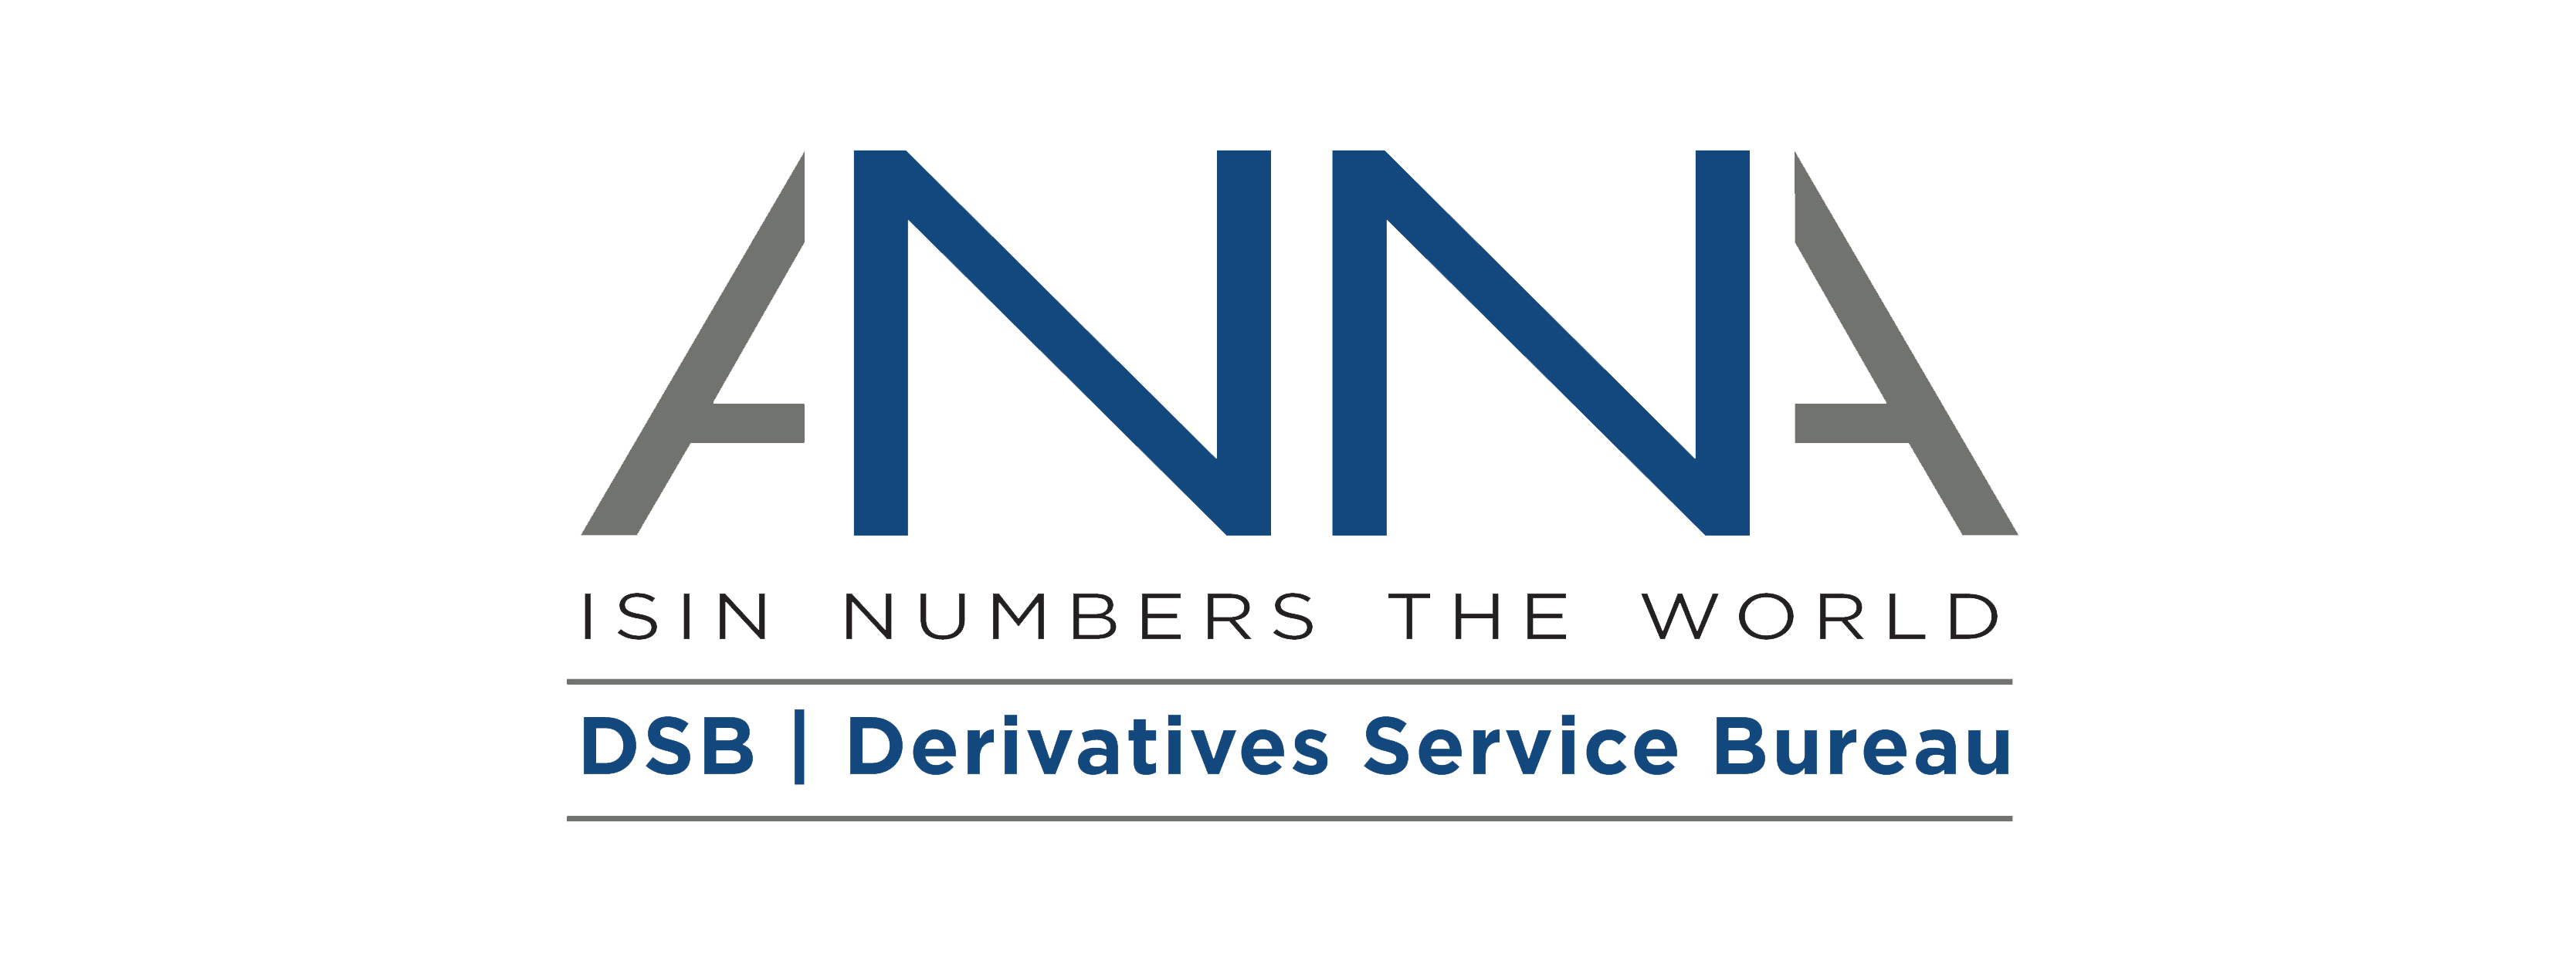 The Derivatives Service Bureau Calls For New Product Committee Members